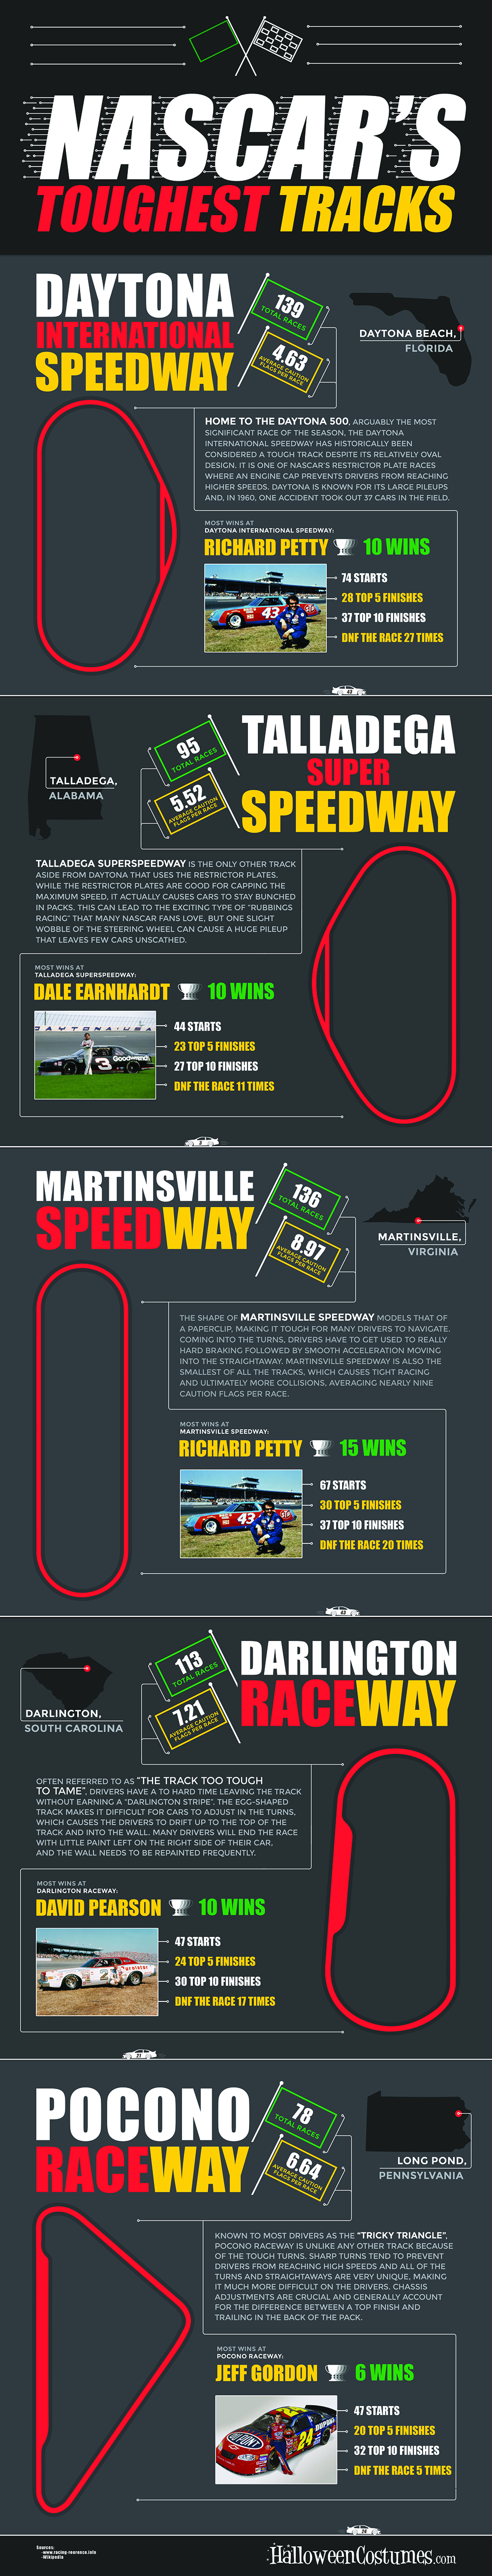 NASCAR's Toughest Tracks